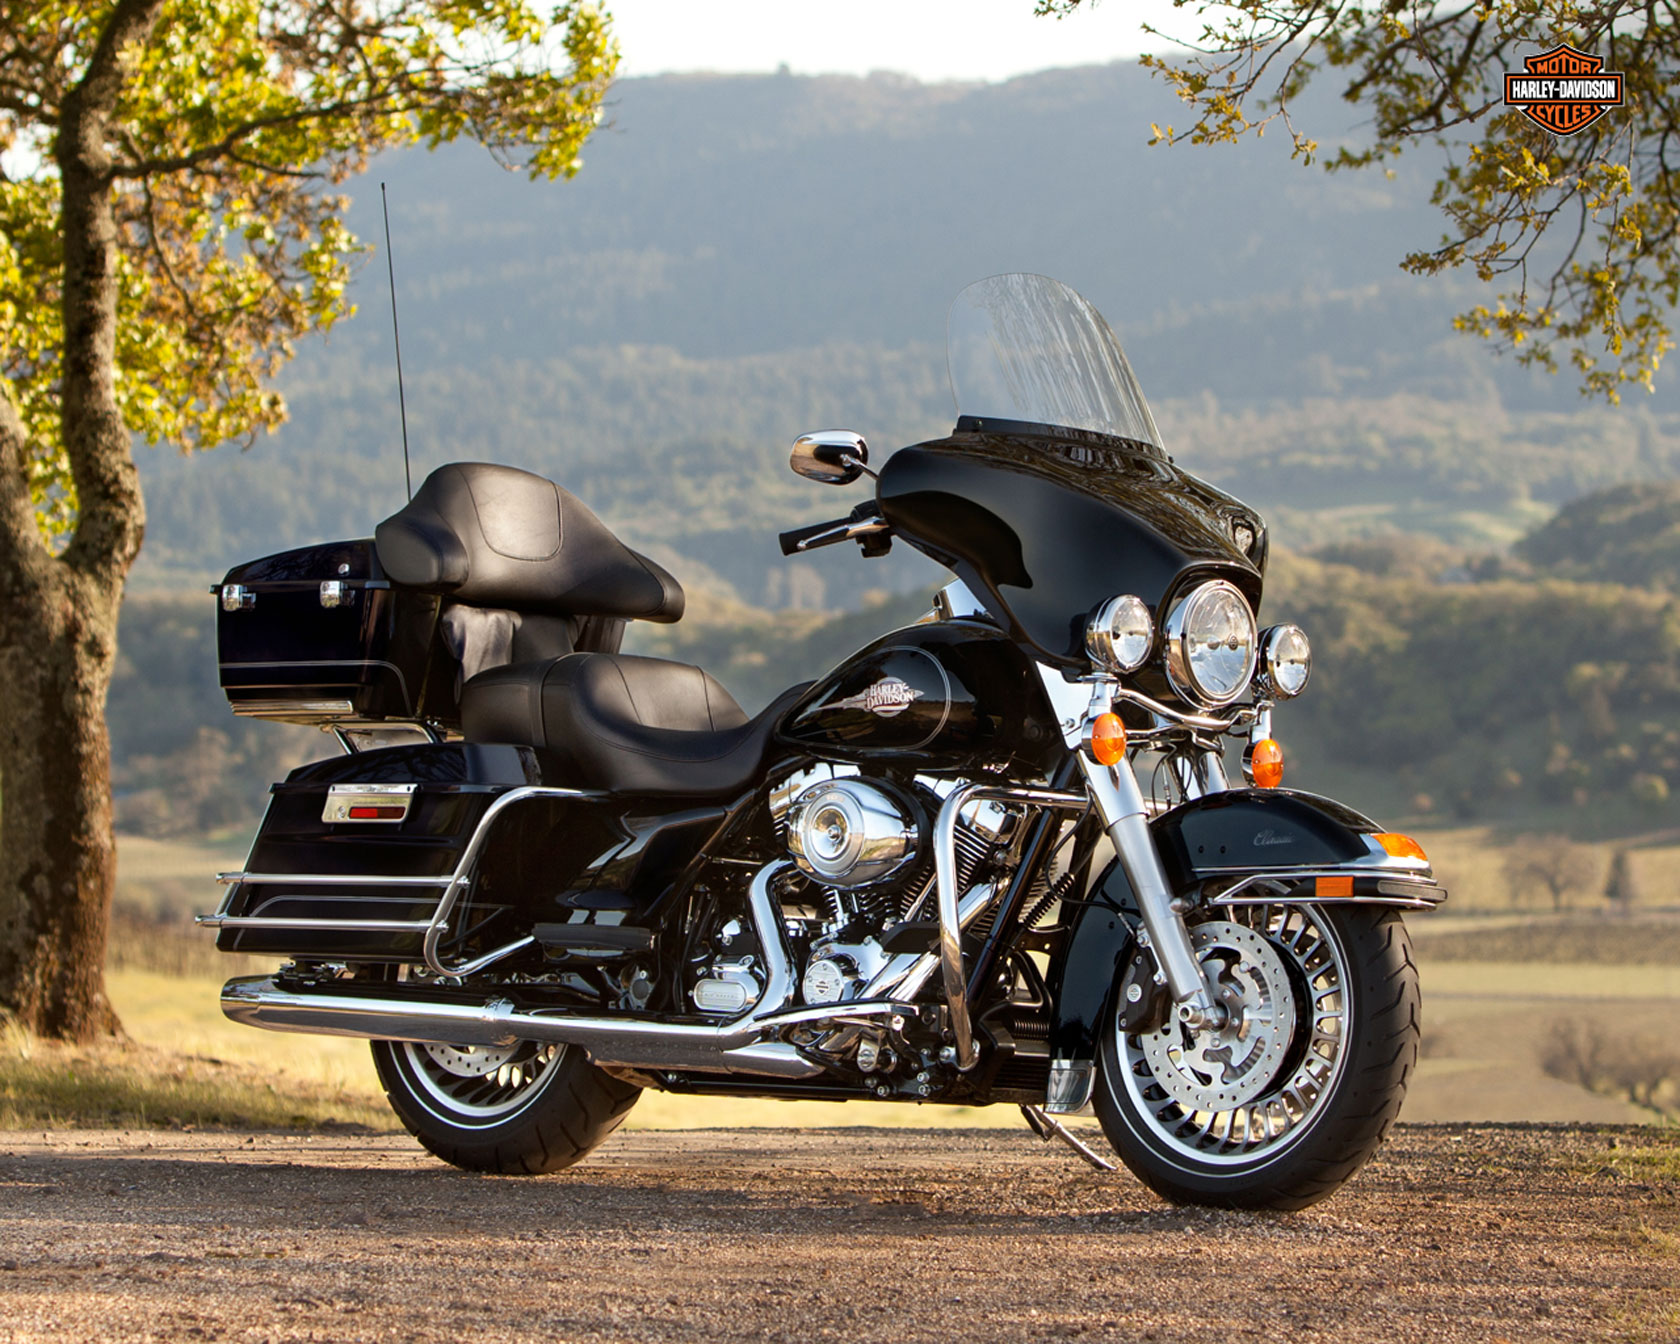 Harley-Davidson FLHTC Electra Glide Classic 2010 #9